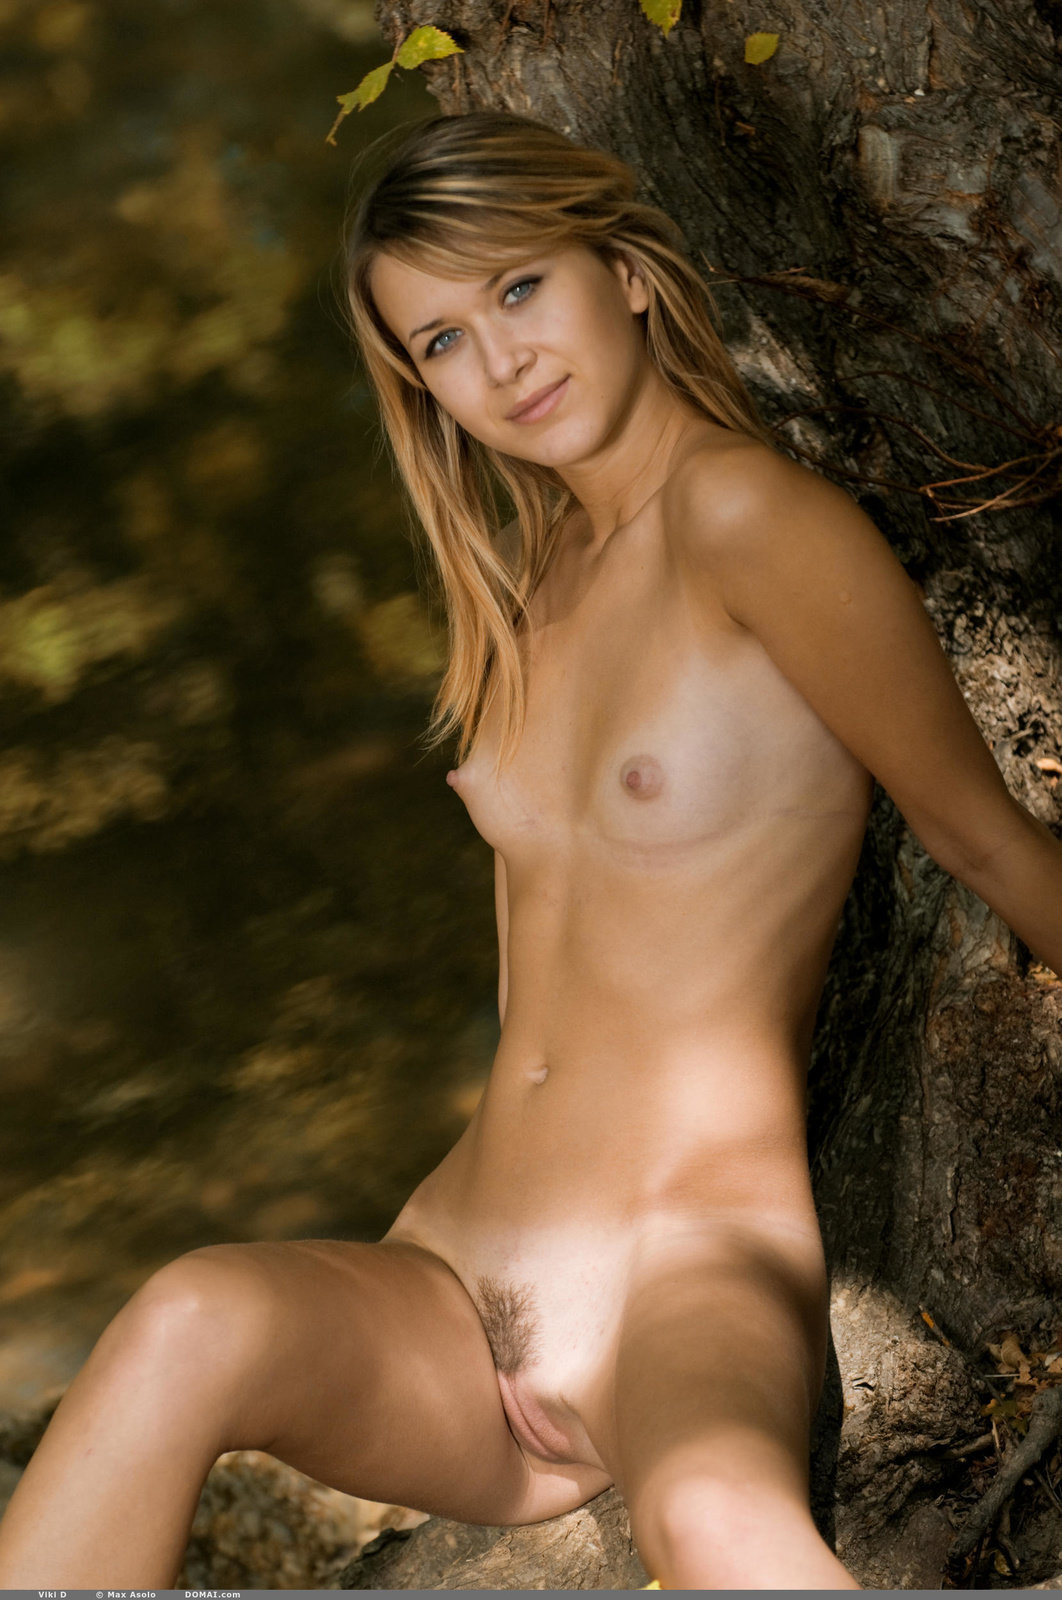 Babes Nude Outdoors